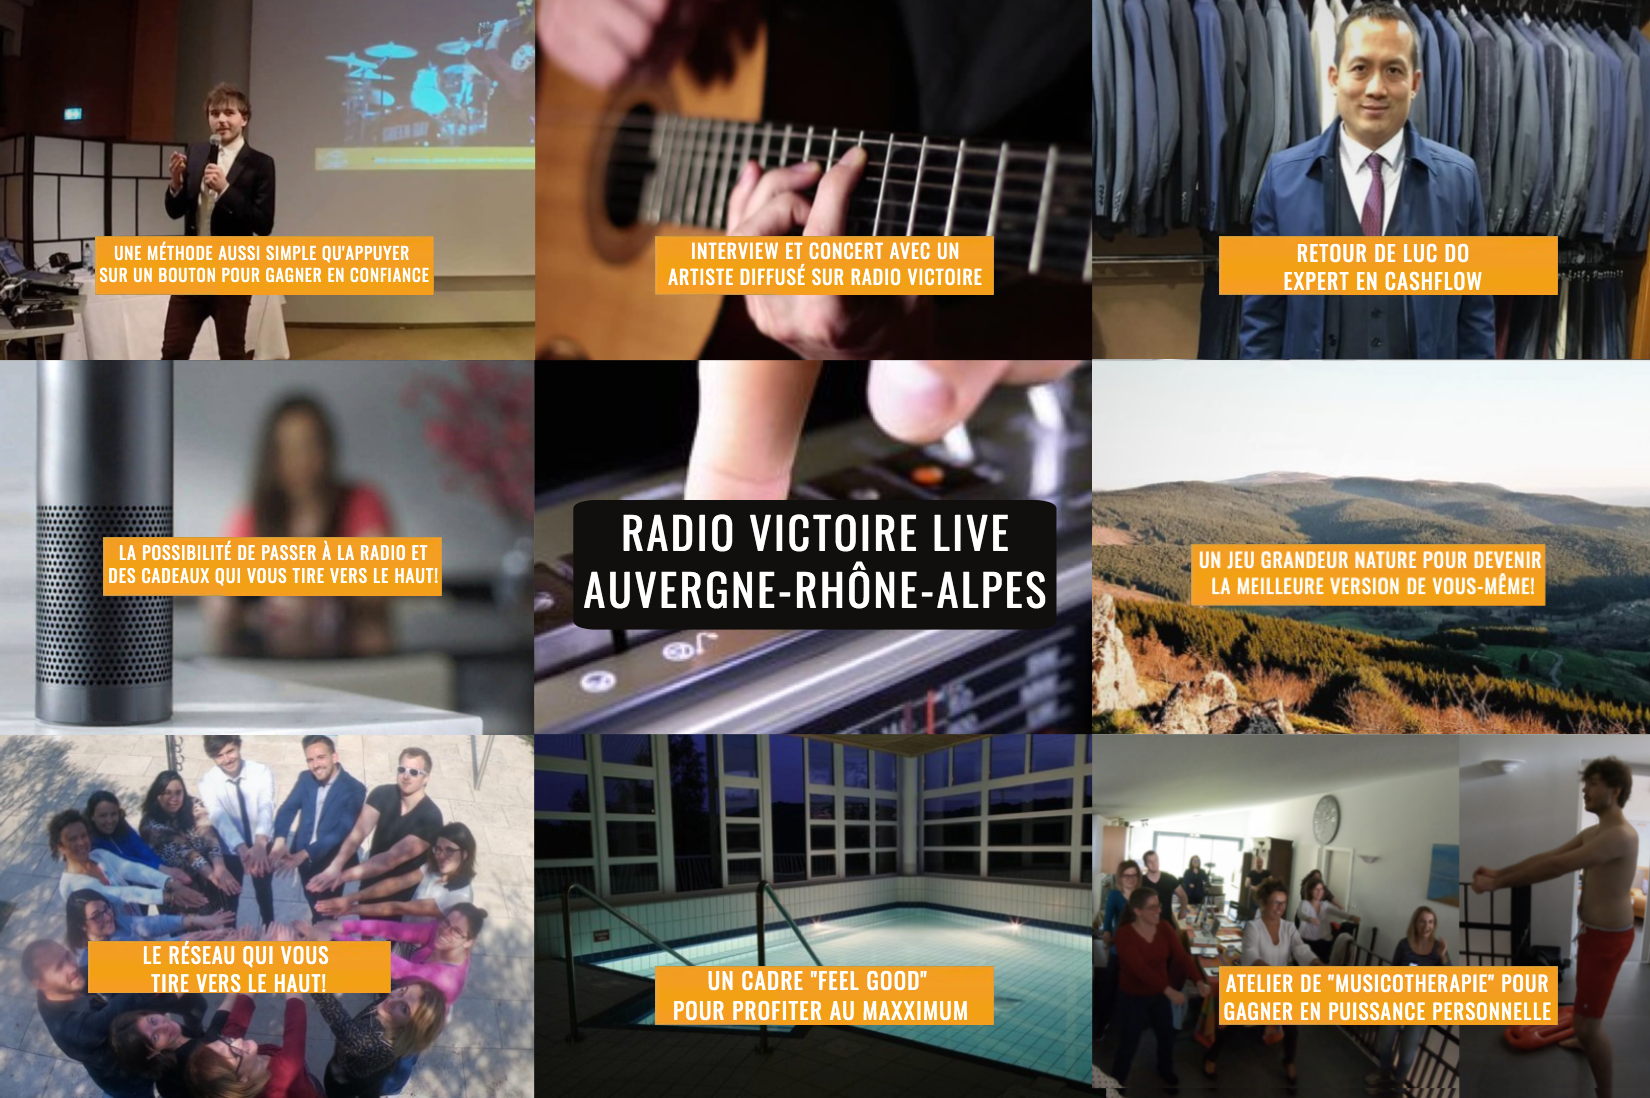 Radio-Victoire-Live-2019.png (2.43 MB)